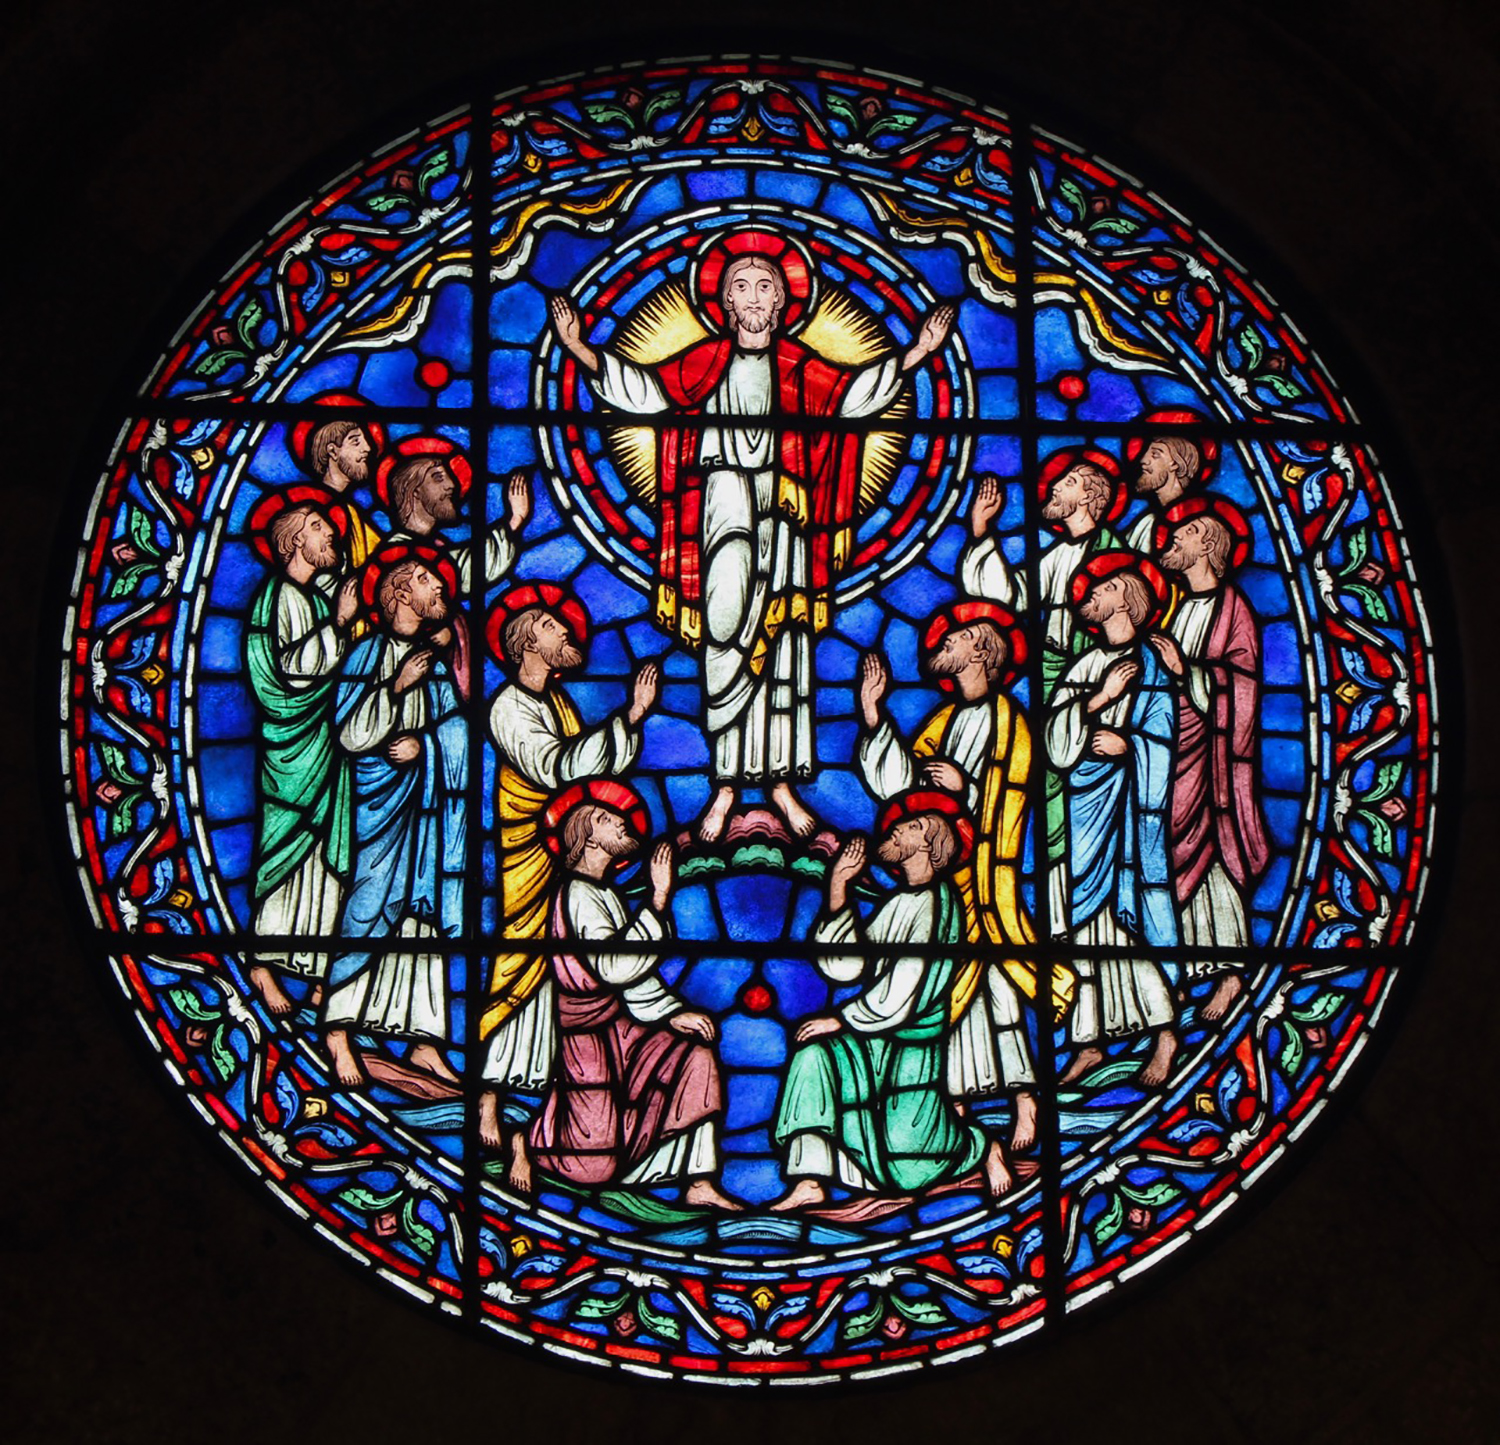 Figure 14: In a central position on the east wall, this roundel window, made in the Bryn Athyn glassworks, features Jesus Christ and the twelve apostles.